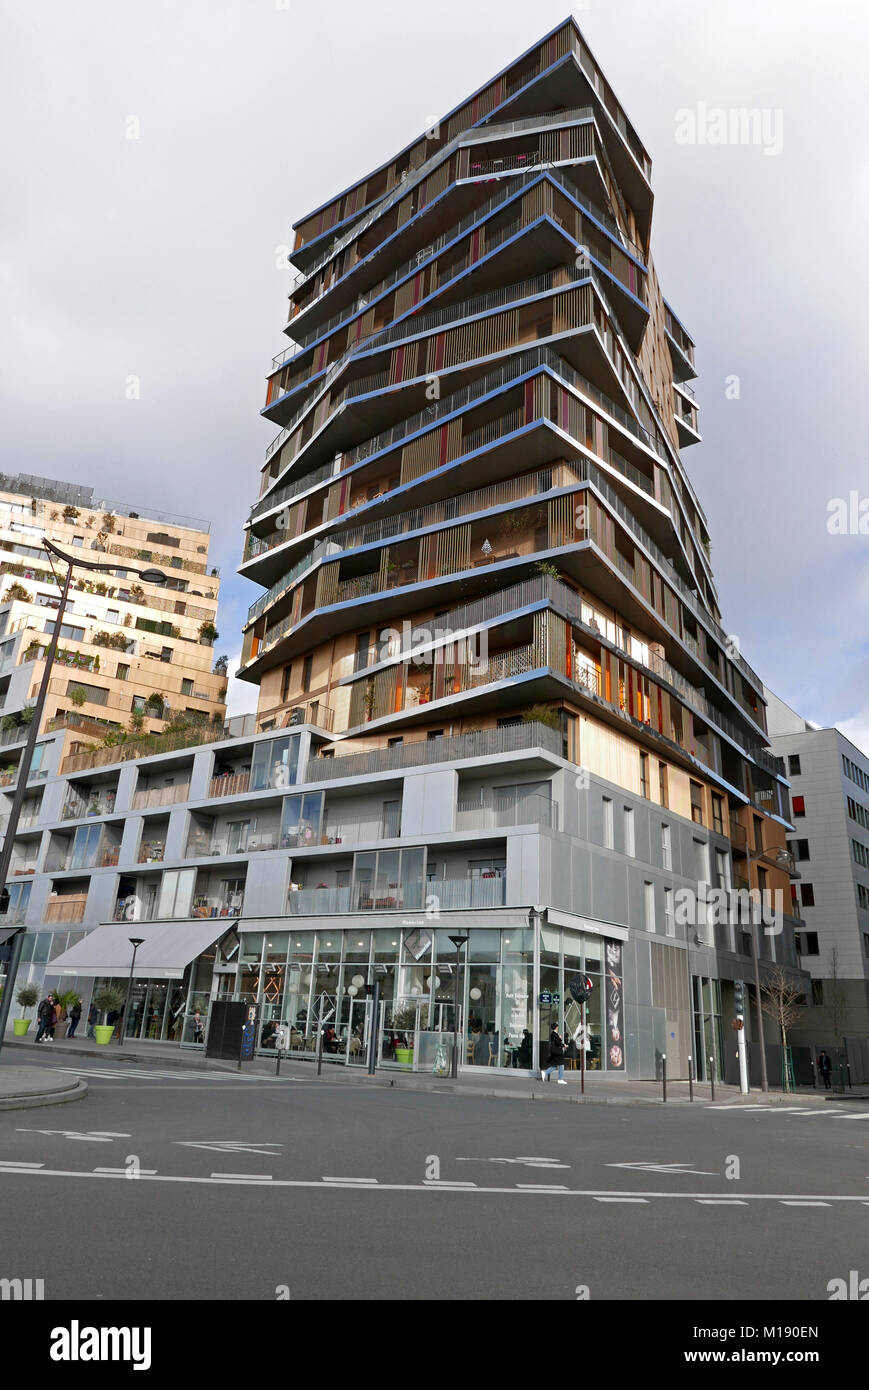 Honorine Restaurant Modern Architecture Avenue De France New